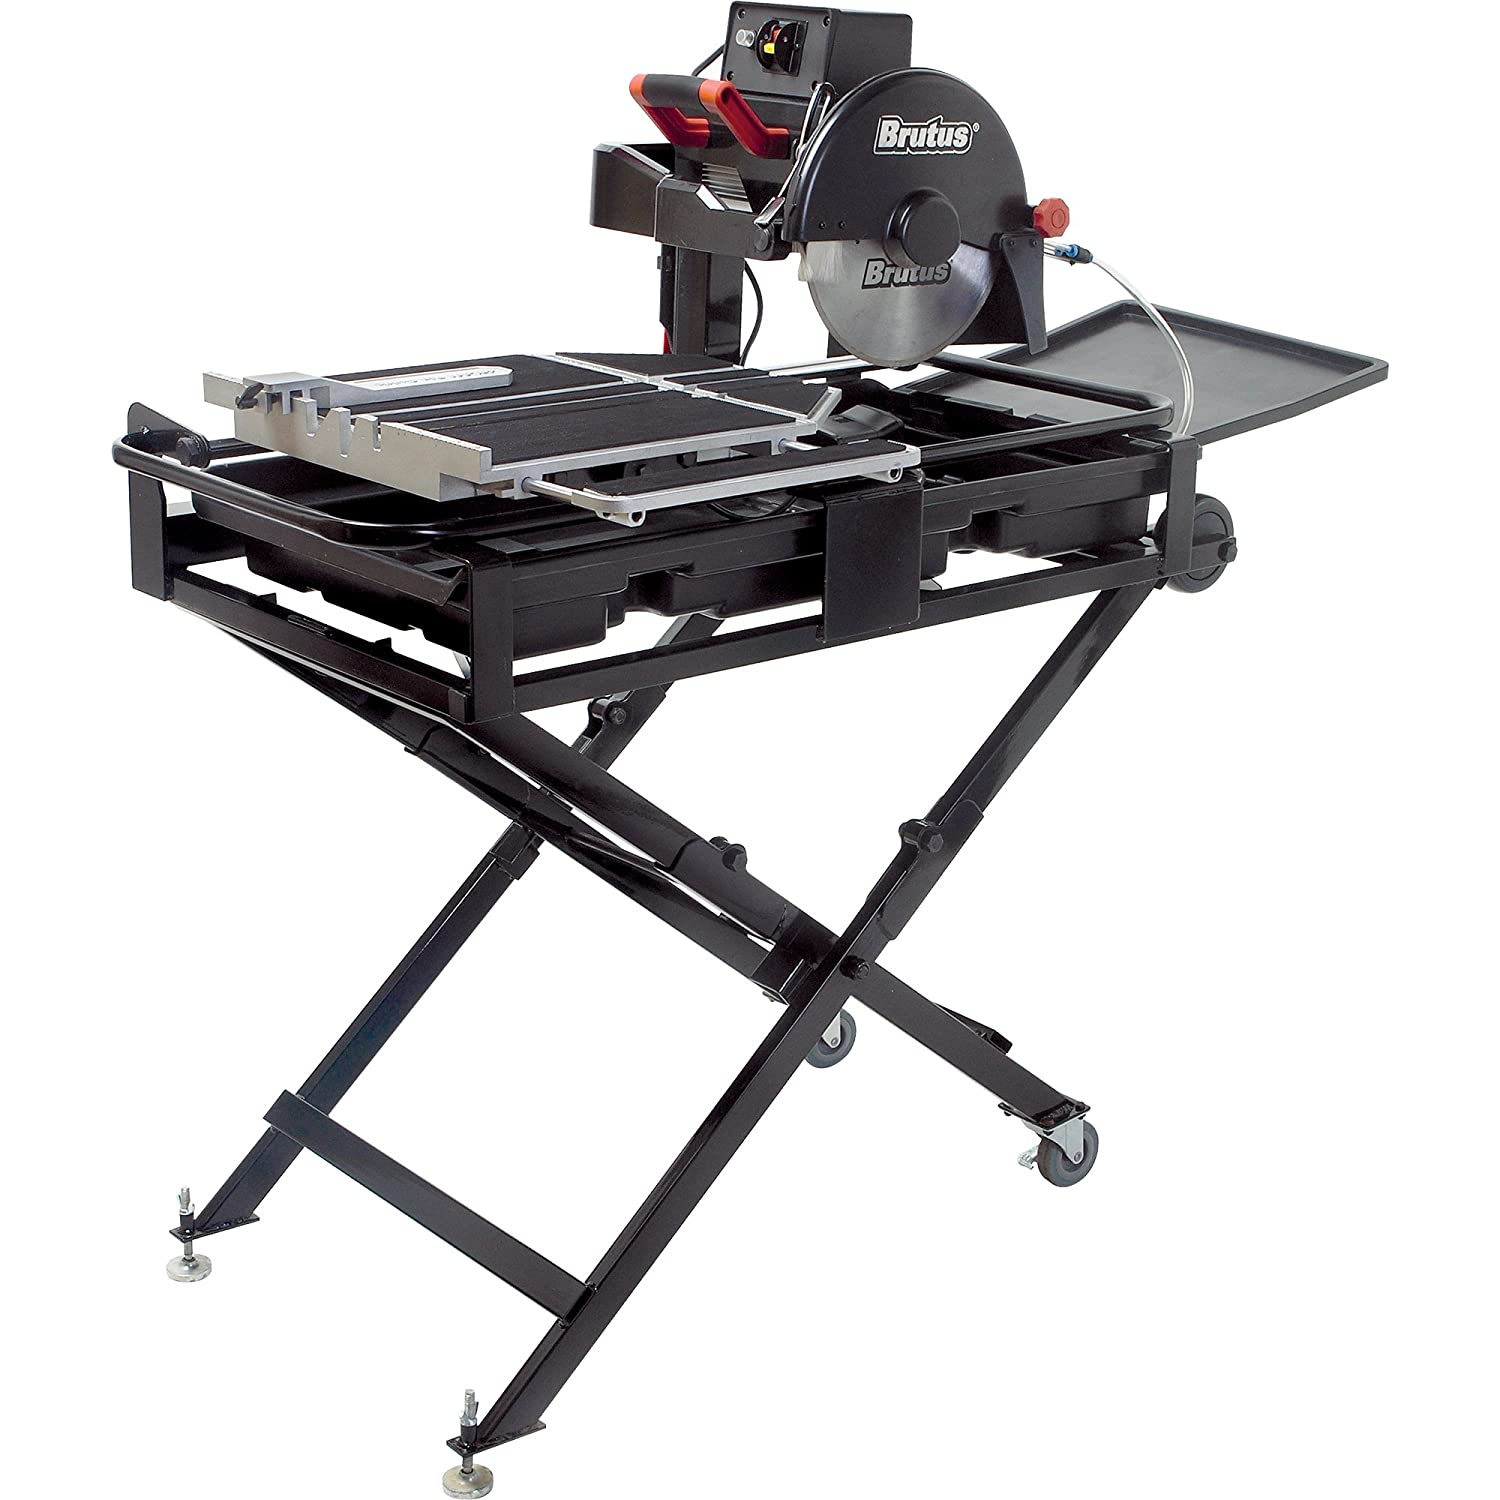 Brutus 61024br professional tile saw with 10 inch diamond blade 1 brutus 61024br professional tile saw with 10 inch diamond blade 1 12 hp motor and stand 24 inch amazon dailygadgetfo Gallery